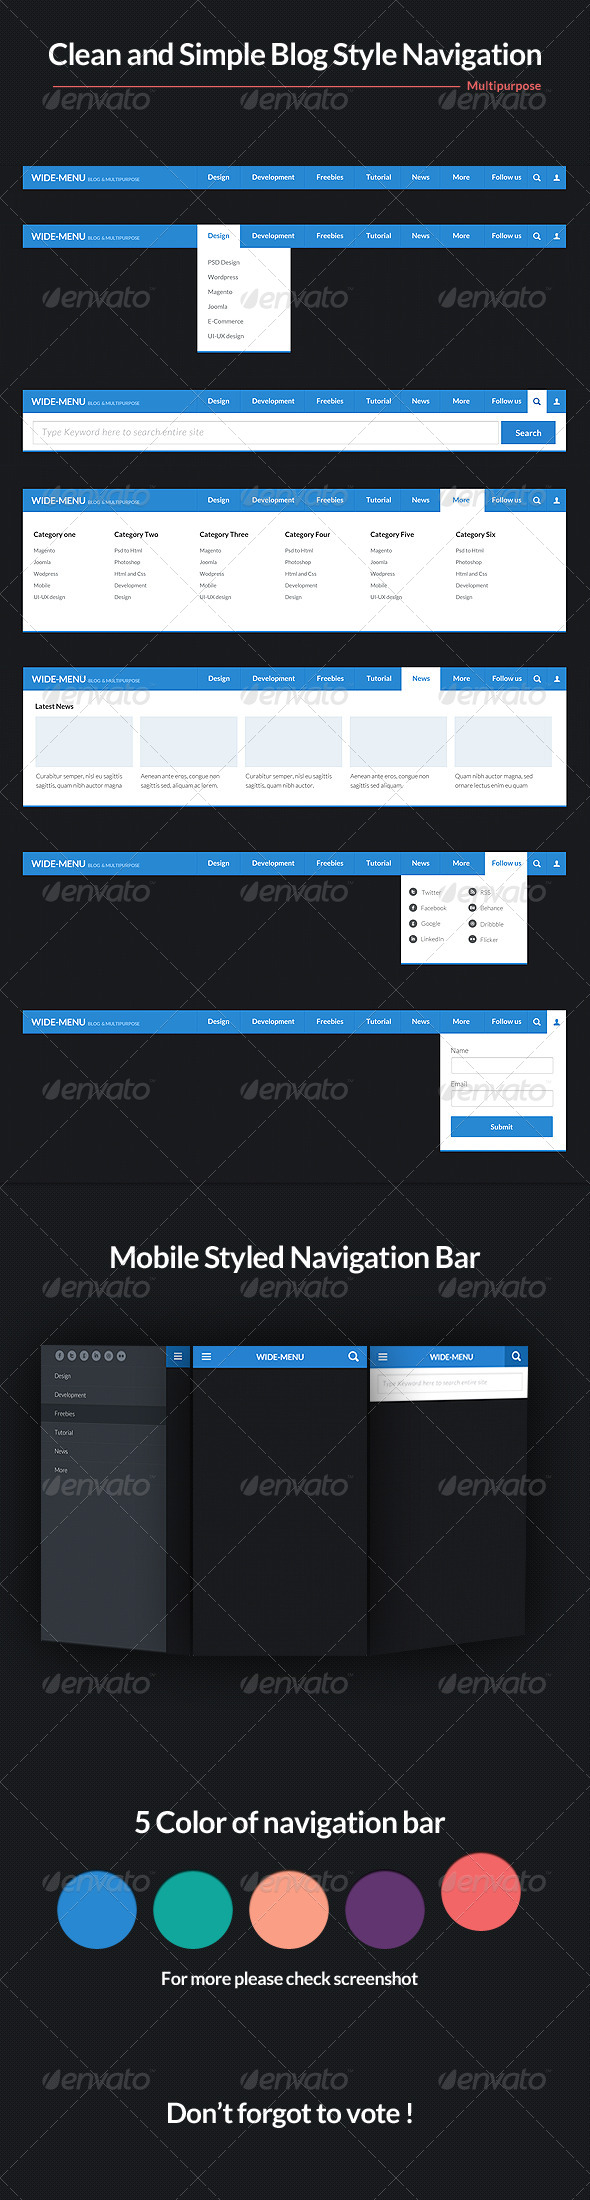 GraphicRiver Wide Blog Style Navigation Bar Psd 4676412